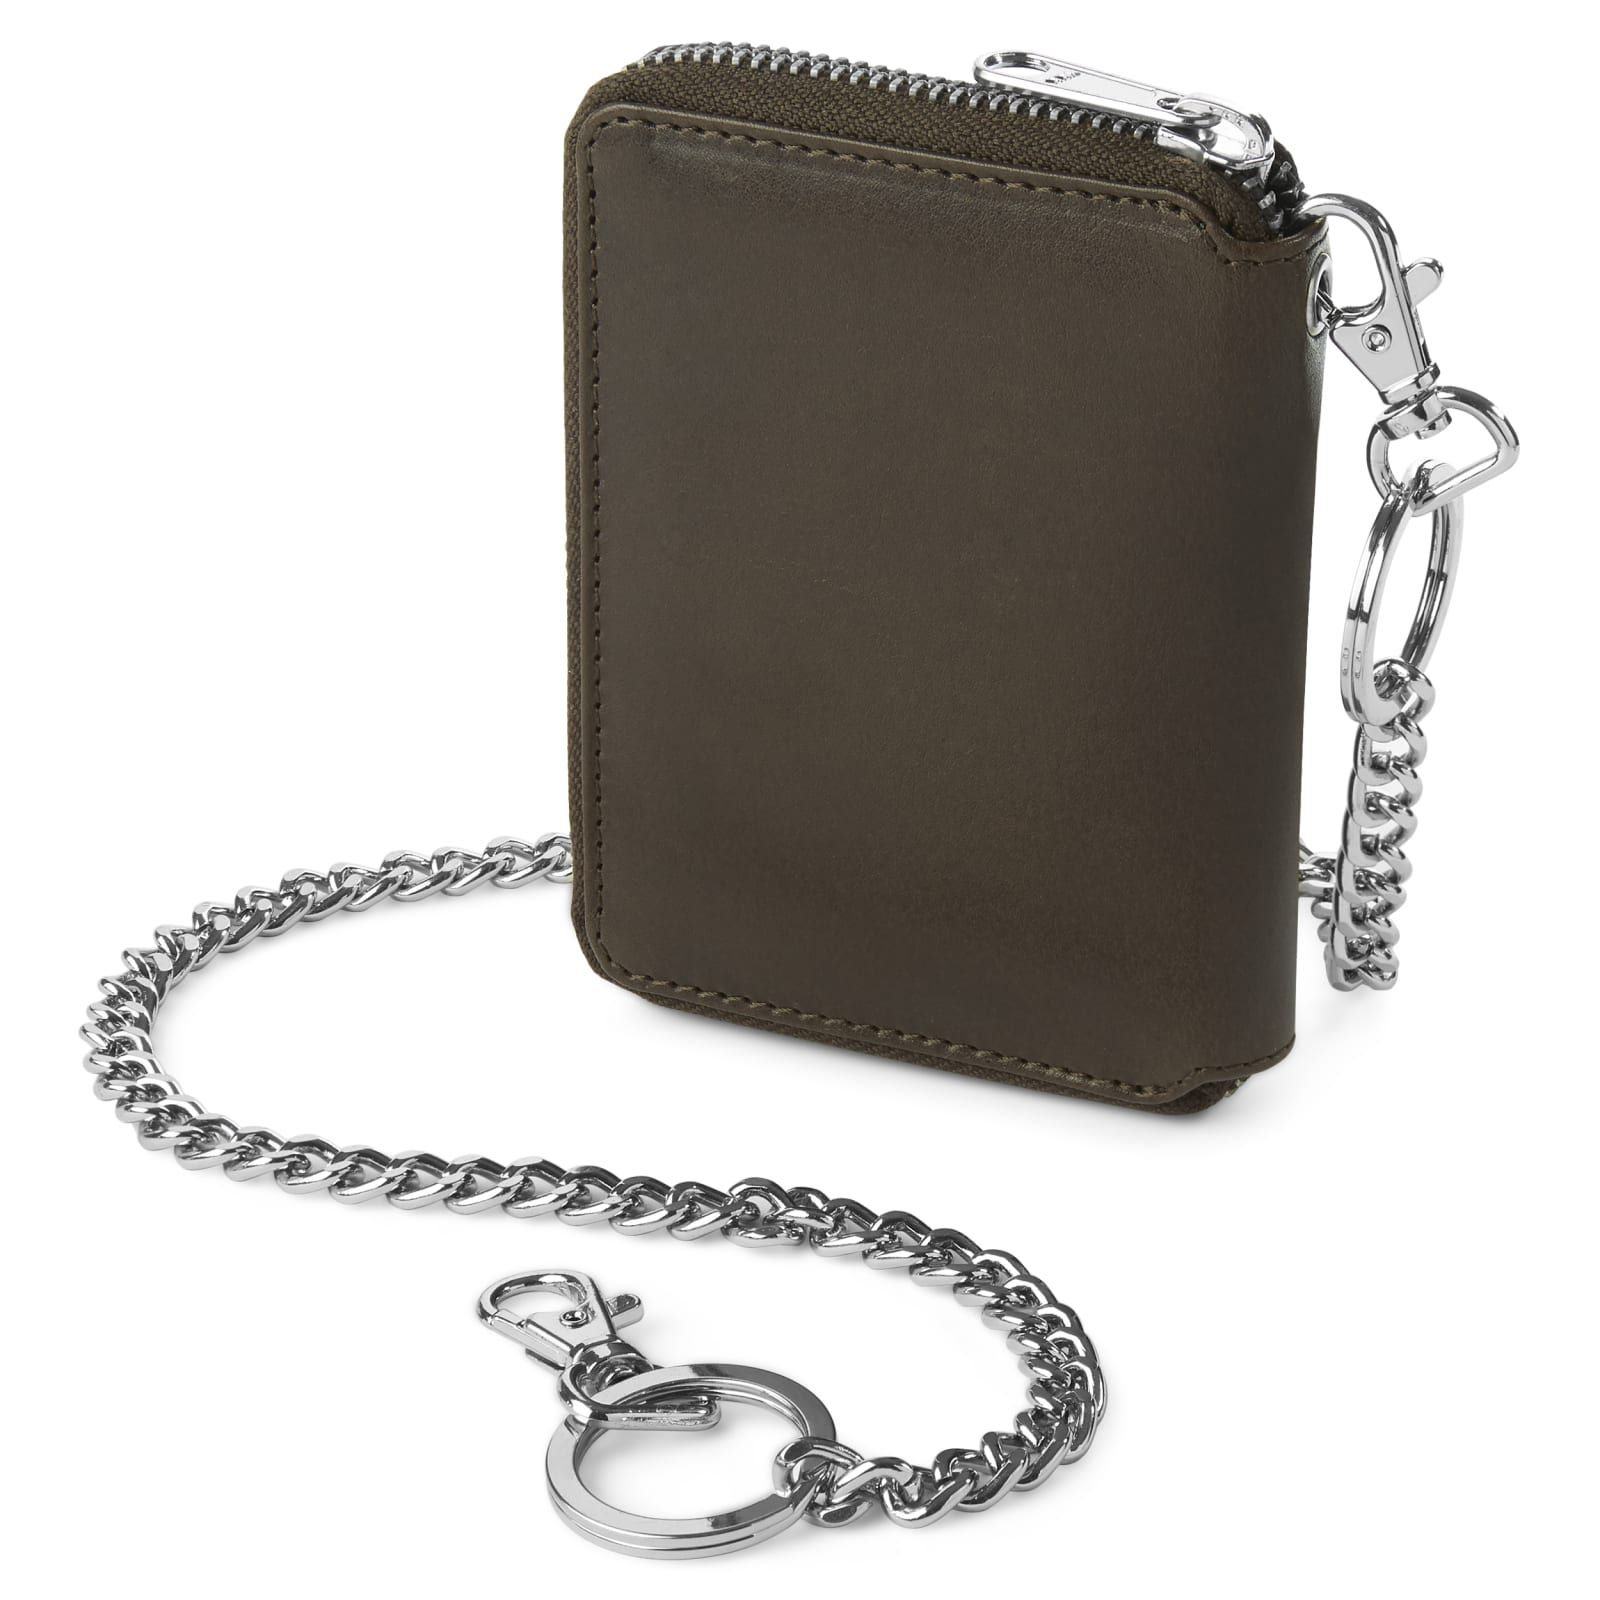 Photo of Larson Dark-Brown Leather RFID Wallet | In stock! | Lucleon